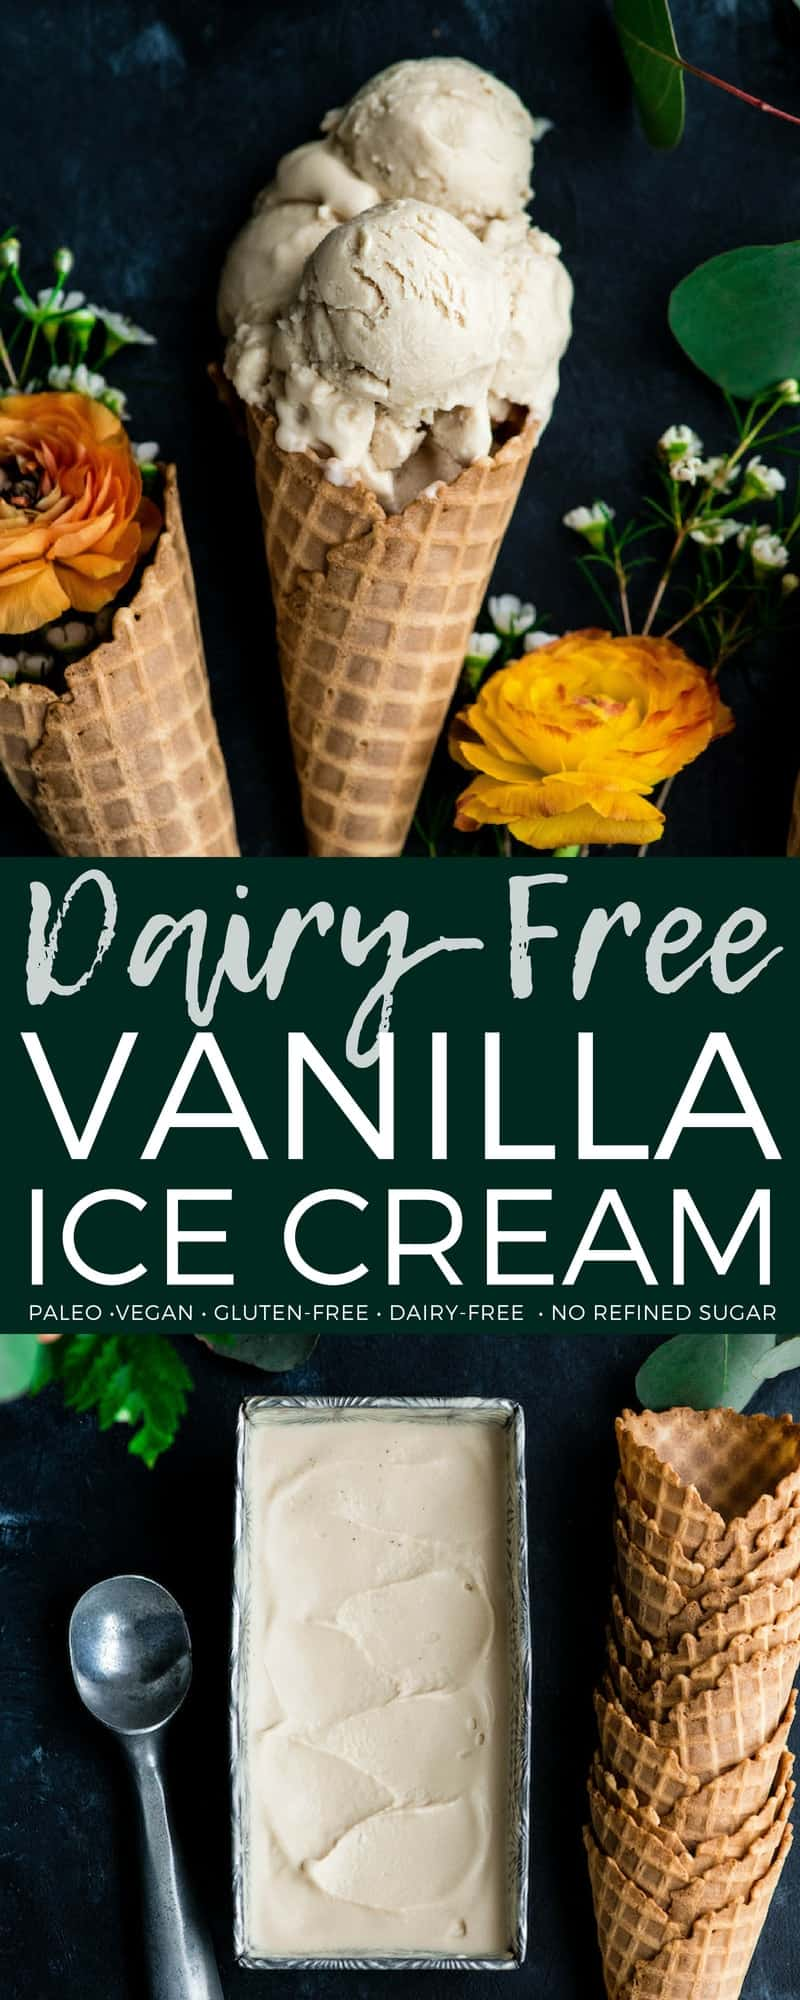 The creamiest homemade dairy-free vanilla ice cream ever! Made with only 5 ingredients and is vegan, paleo, gluten-free & refined sugar free! #paleo #glutenfree #dairyfree #icecream #vegan #vanillaicecream #homemade #recipe #healthydessert #healthy